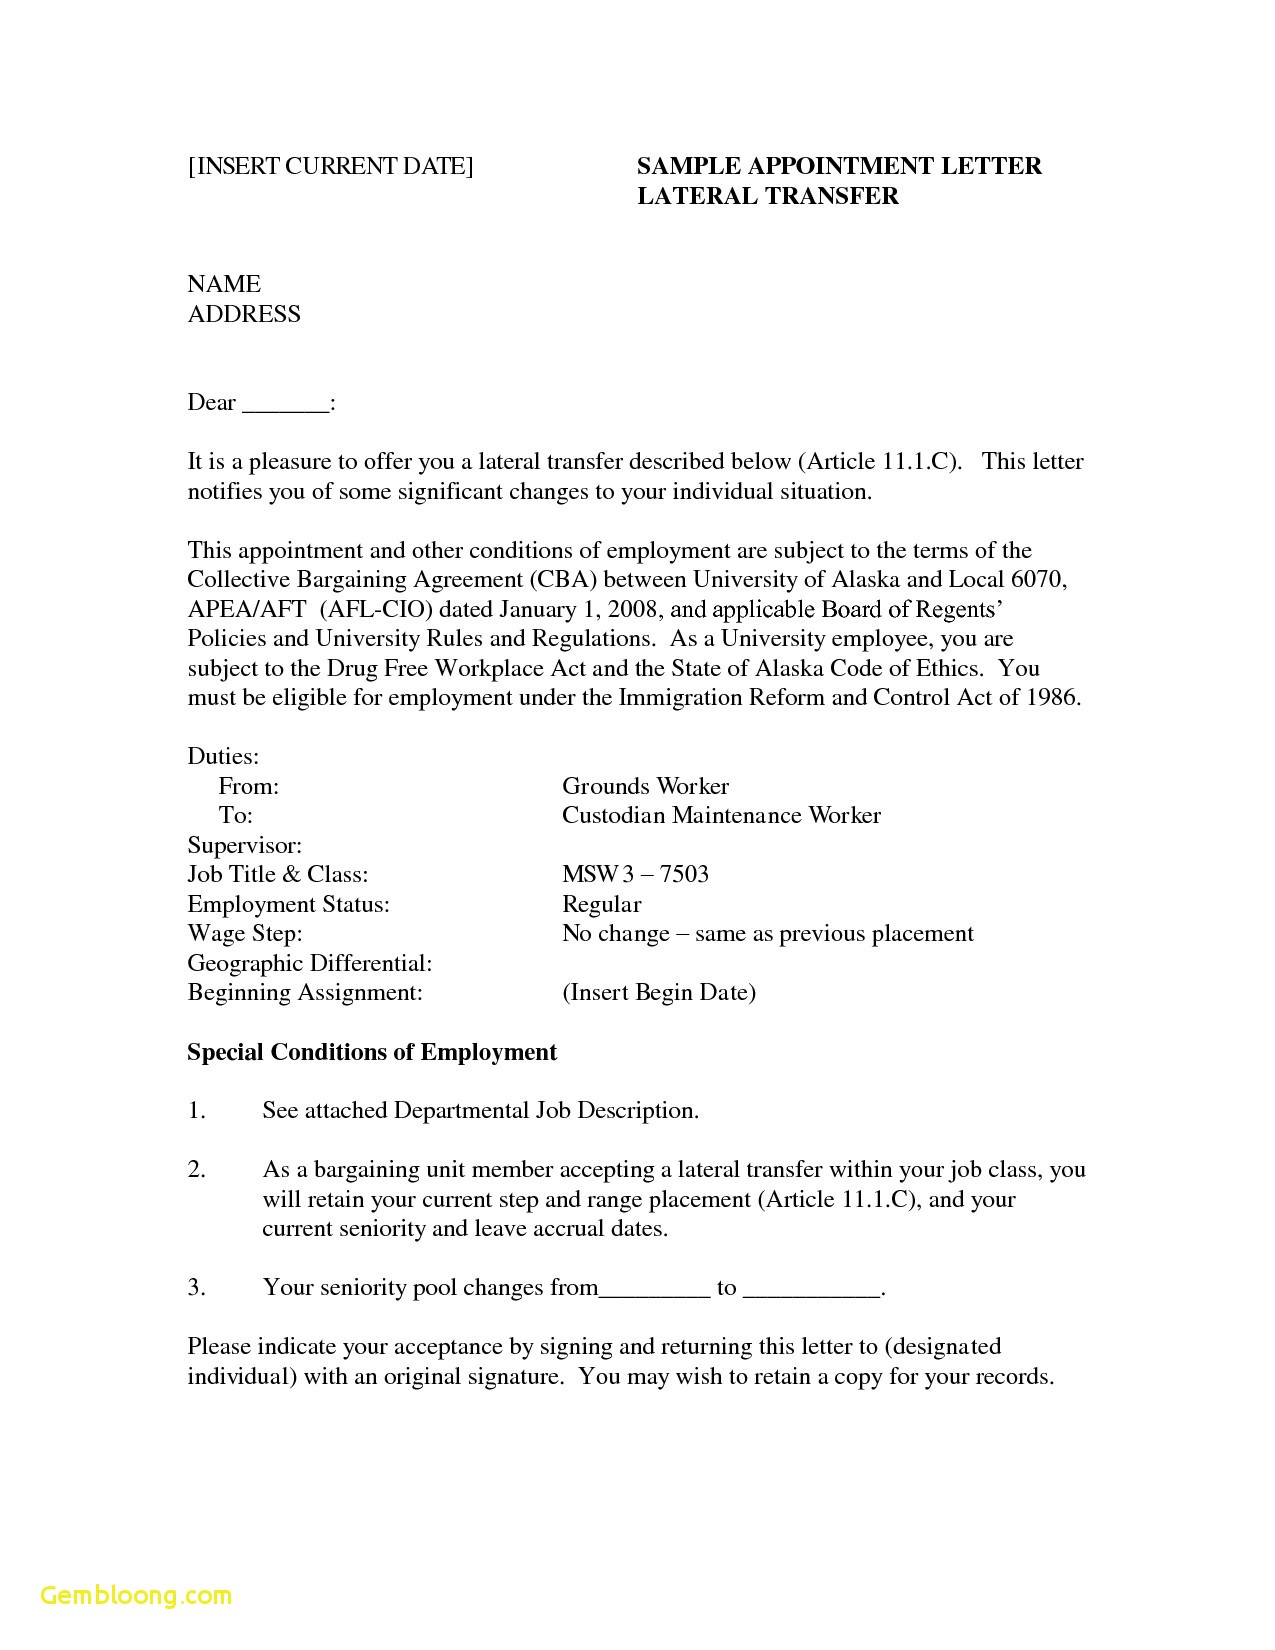 Cover Letter Template Word - Word Resume Samples Download Cover Letter Template Word 2014 Fresh